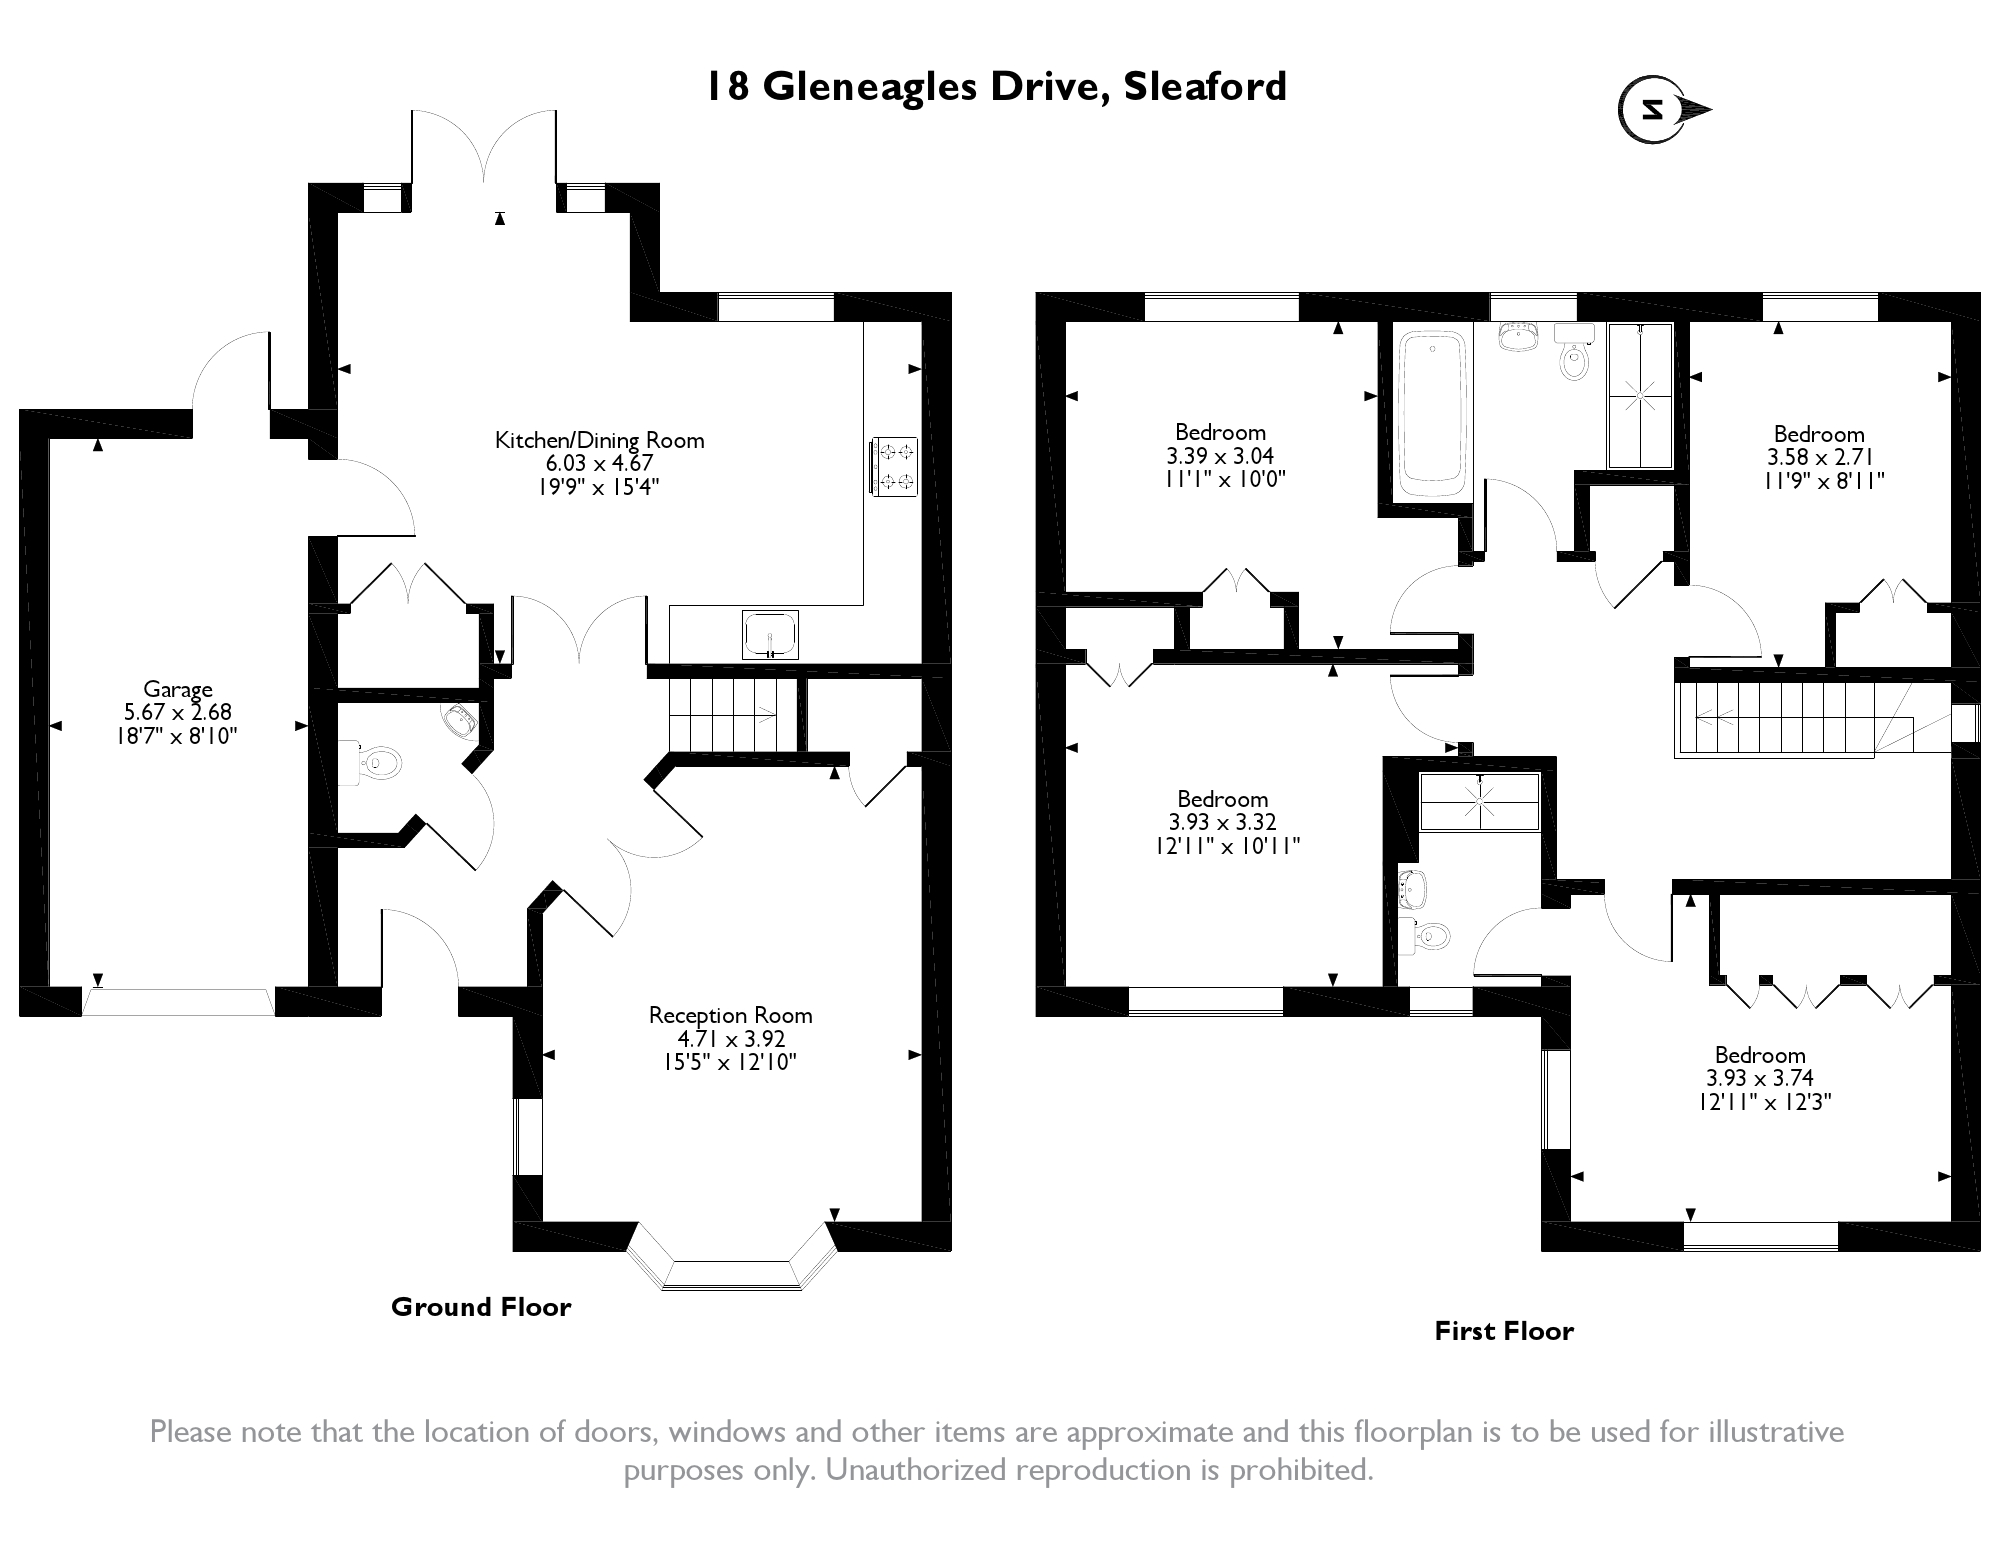 Gleneagles Drive, Sleaford, NG34 floor plan